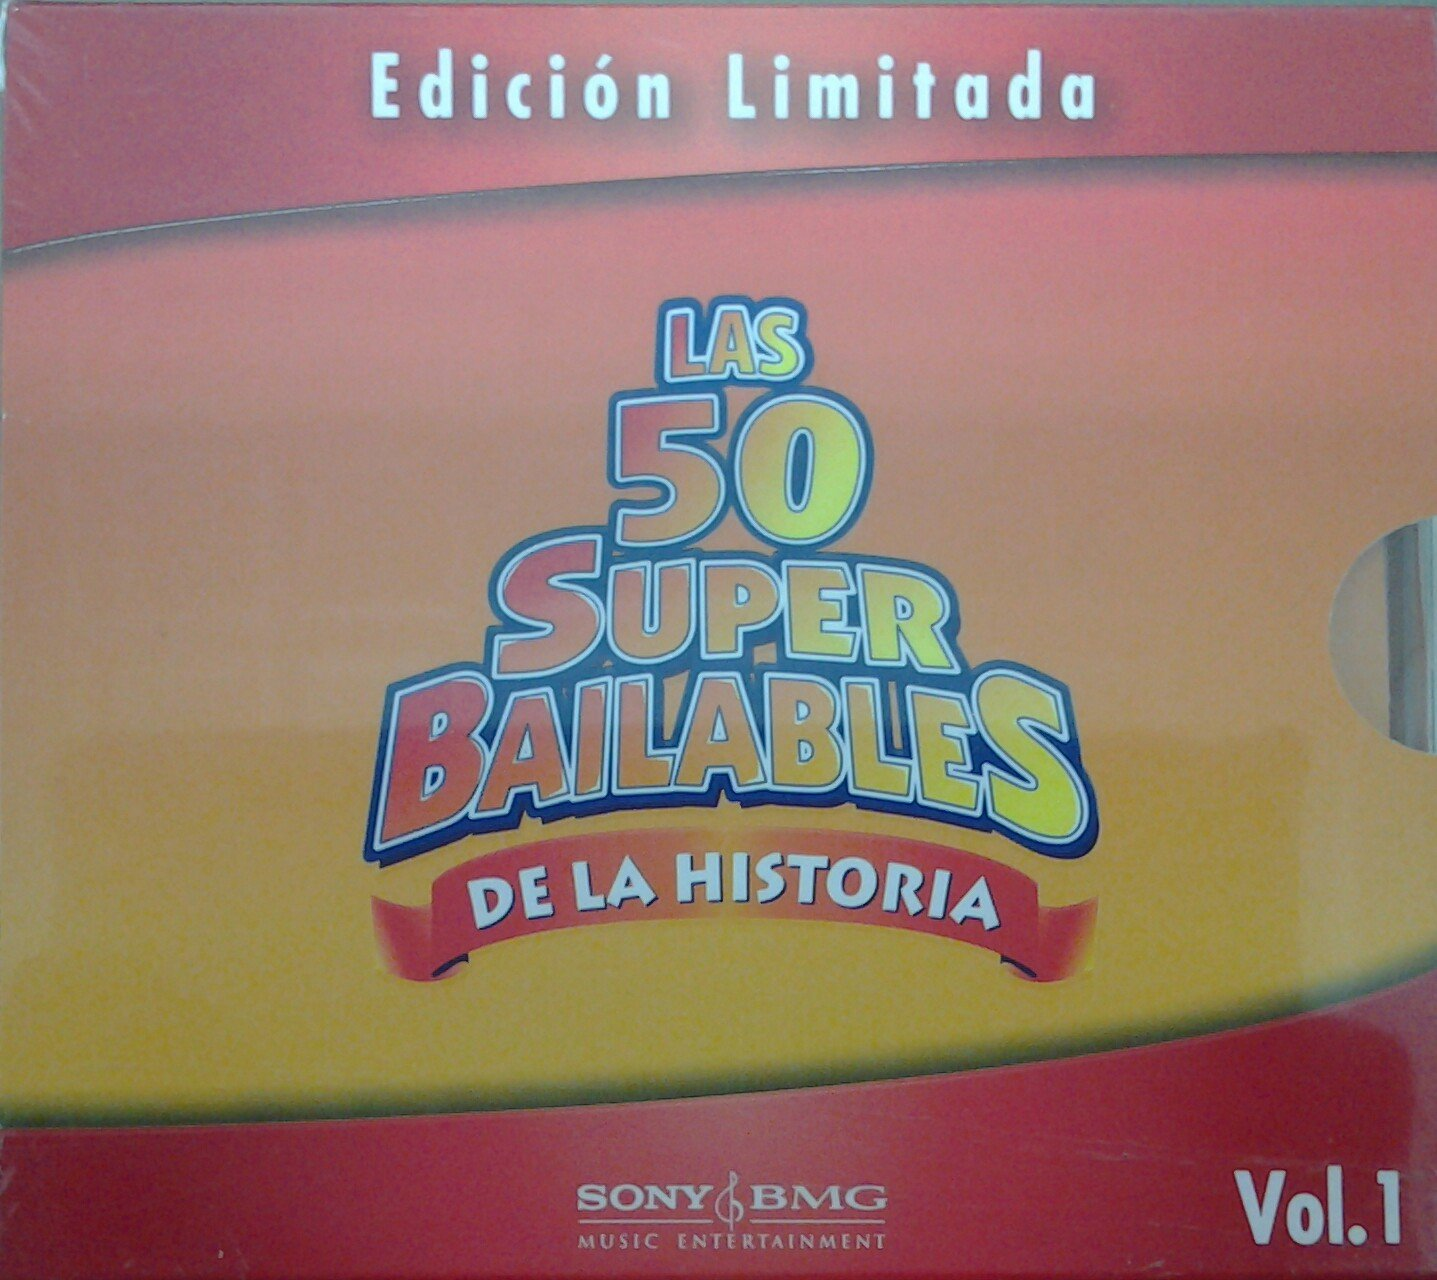 VARIOS - CD TROPICAL LAS 50 SUPER BAILABLES DE LA HISTORIA - Amazon.com Music